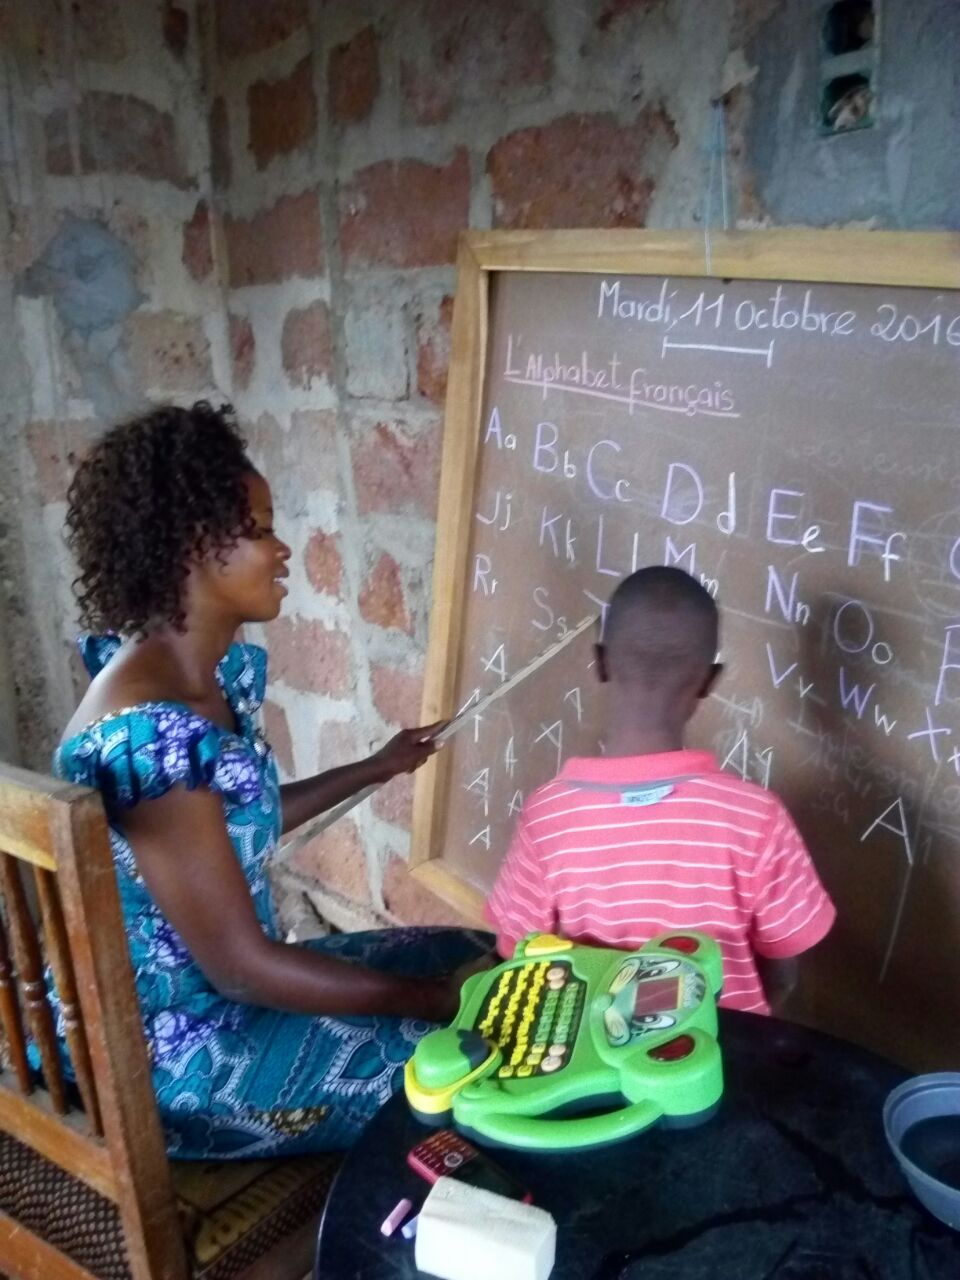 Mme Ogbon teaches Sele the alphabet. Sele has special needs and was formerly asked to leave school due to lack of resources. We're happy to report that he is now in the 1st grade after being in our program last year.